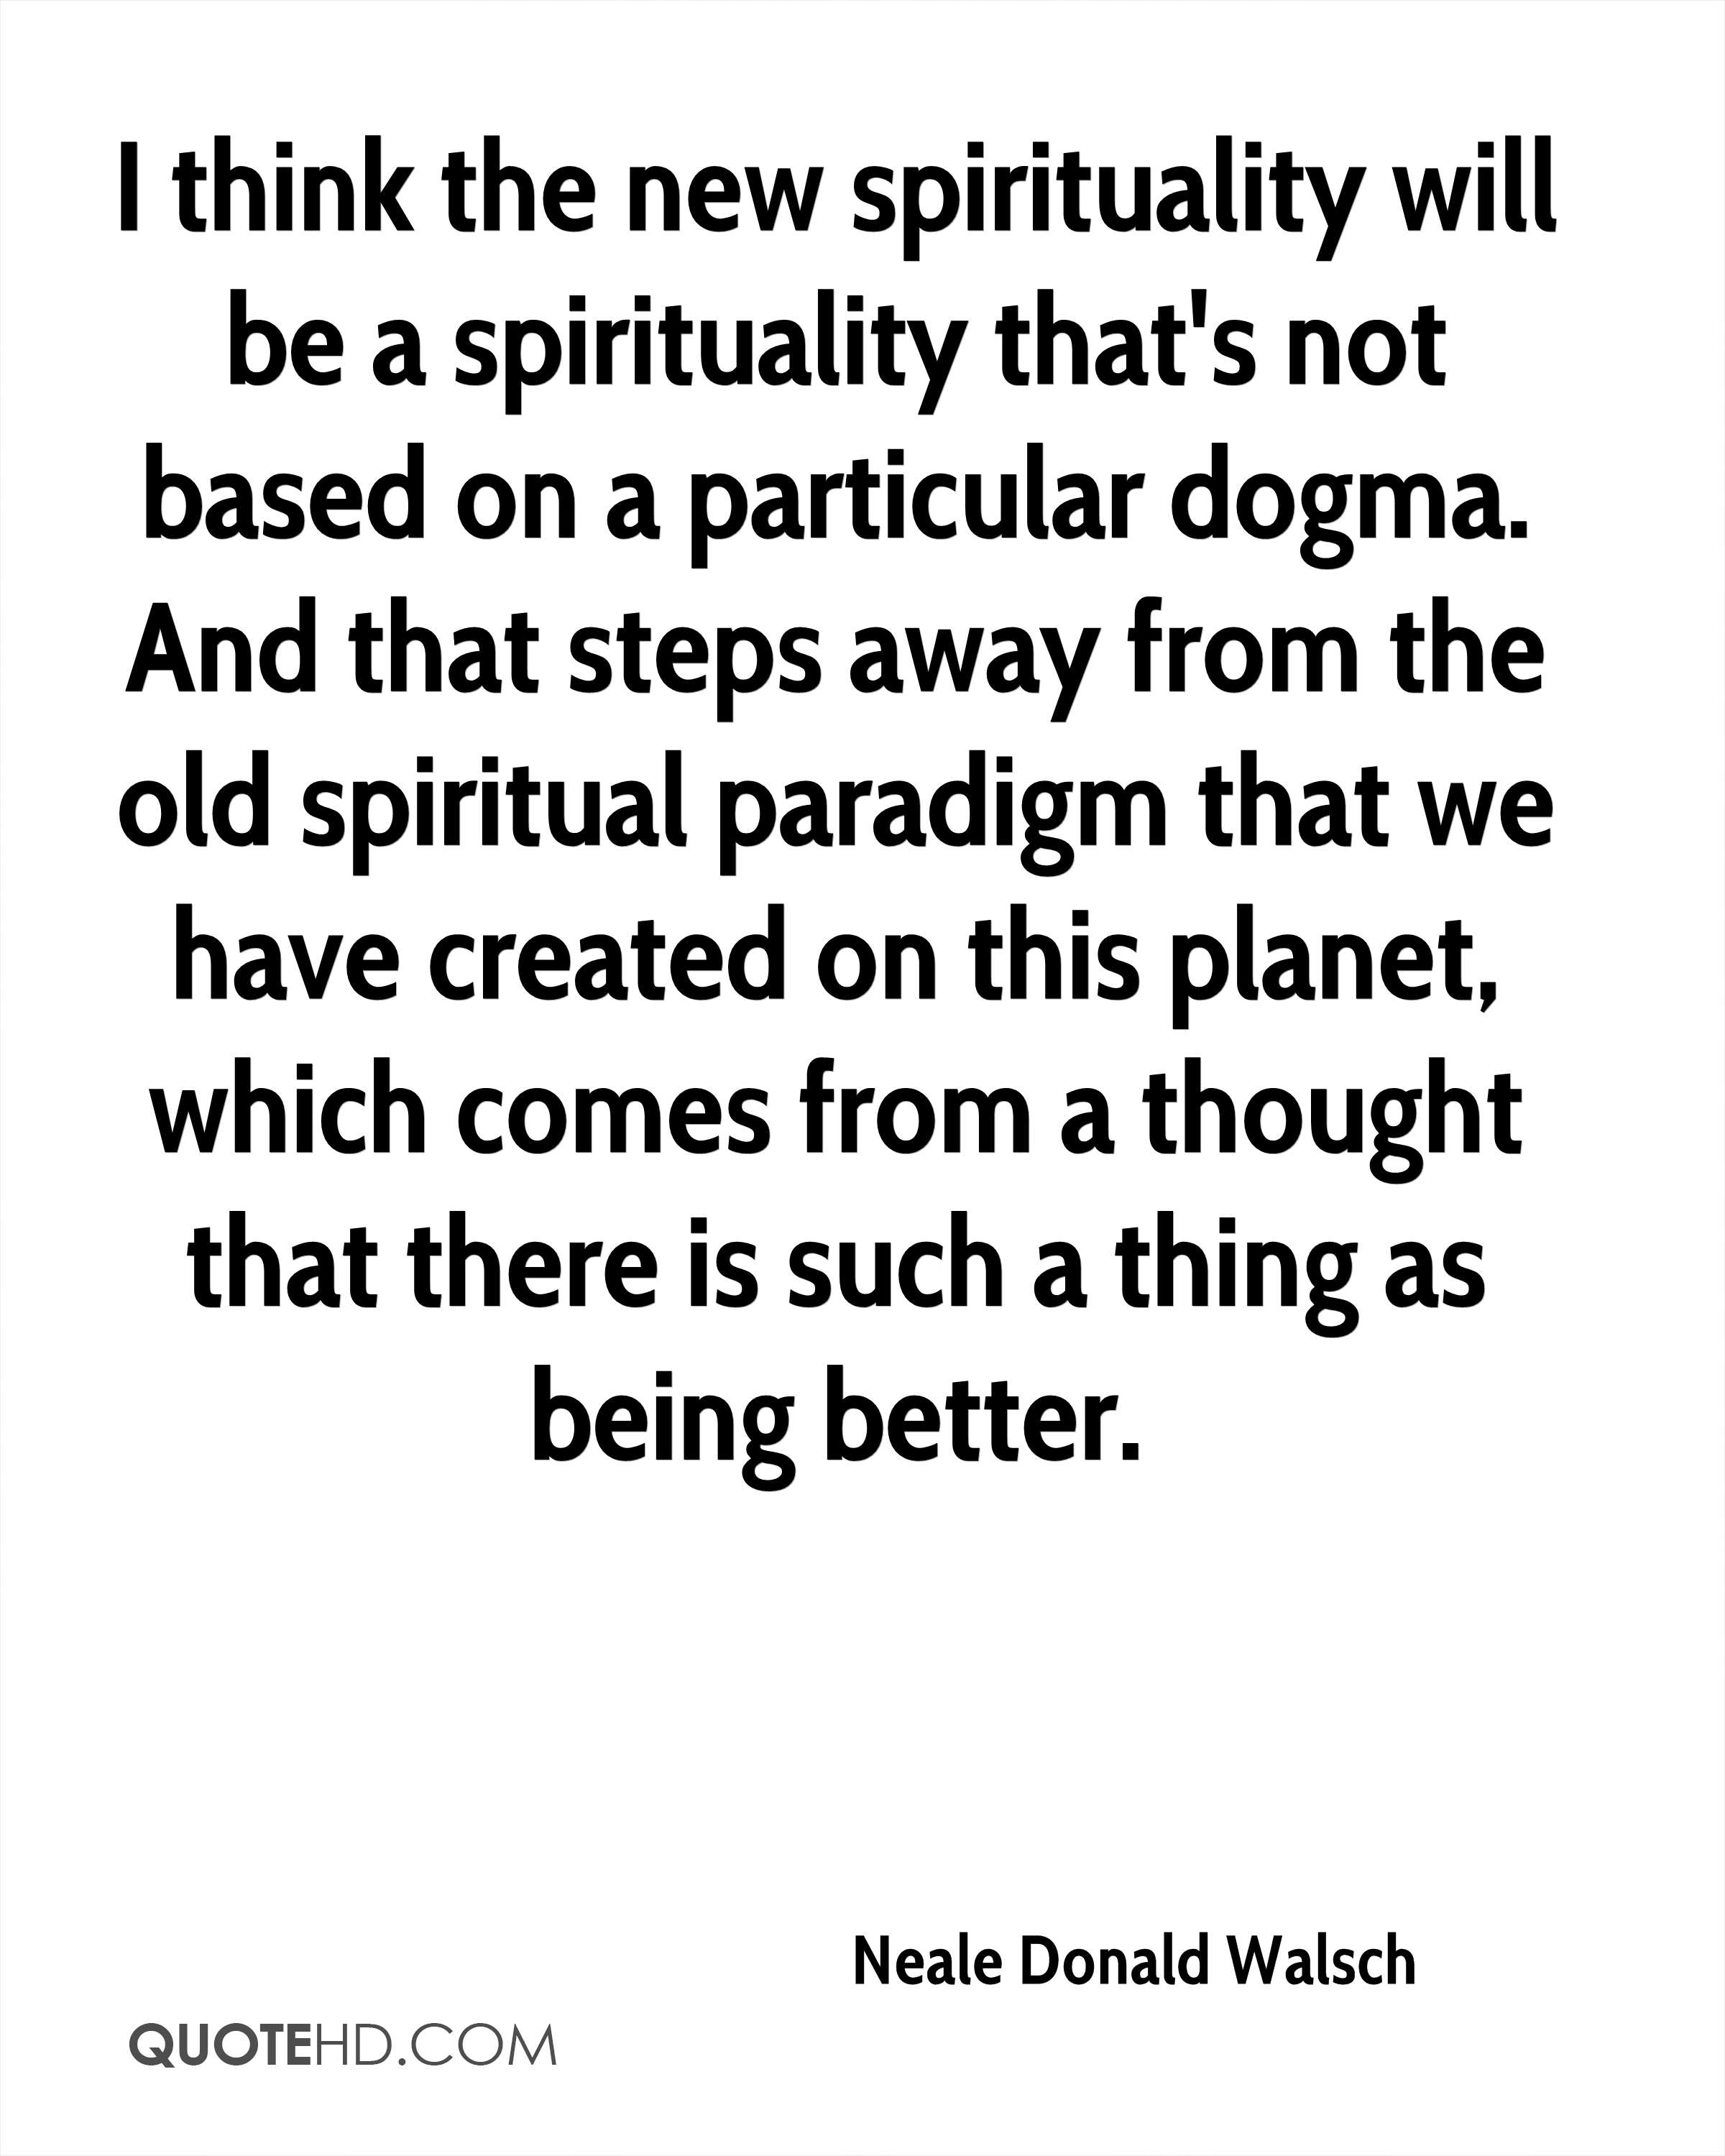 I think the new spirituality will be a spirituality that's not based on a particular dogma. And that steps away from the old spiritual paradigm that we have created on this planet, which comes from a thought that there is such a thing as being better.